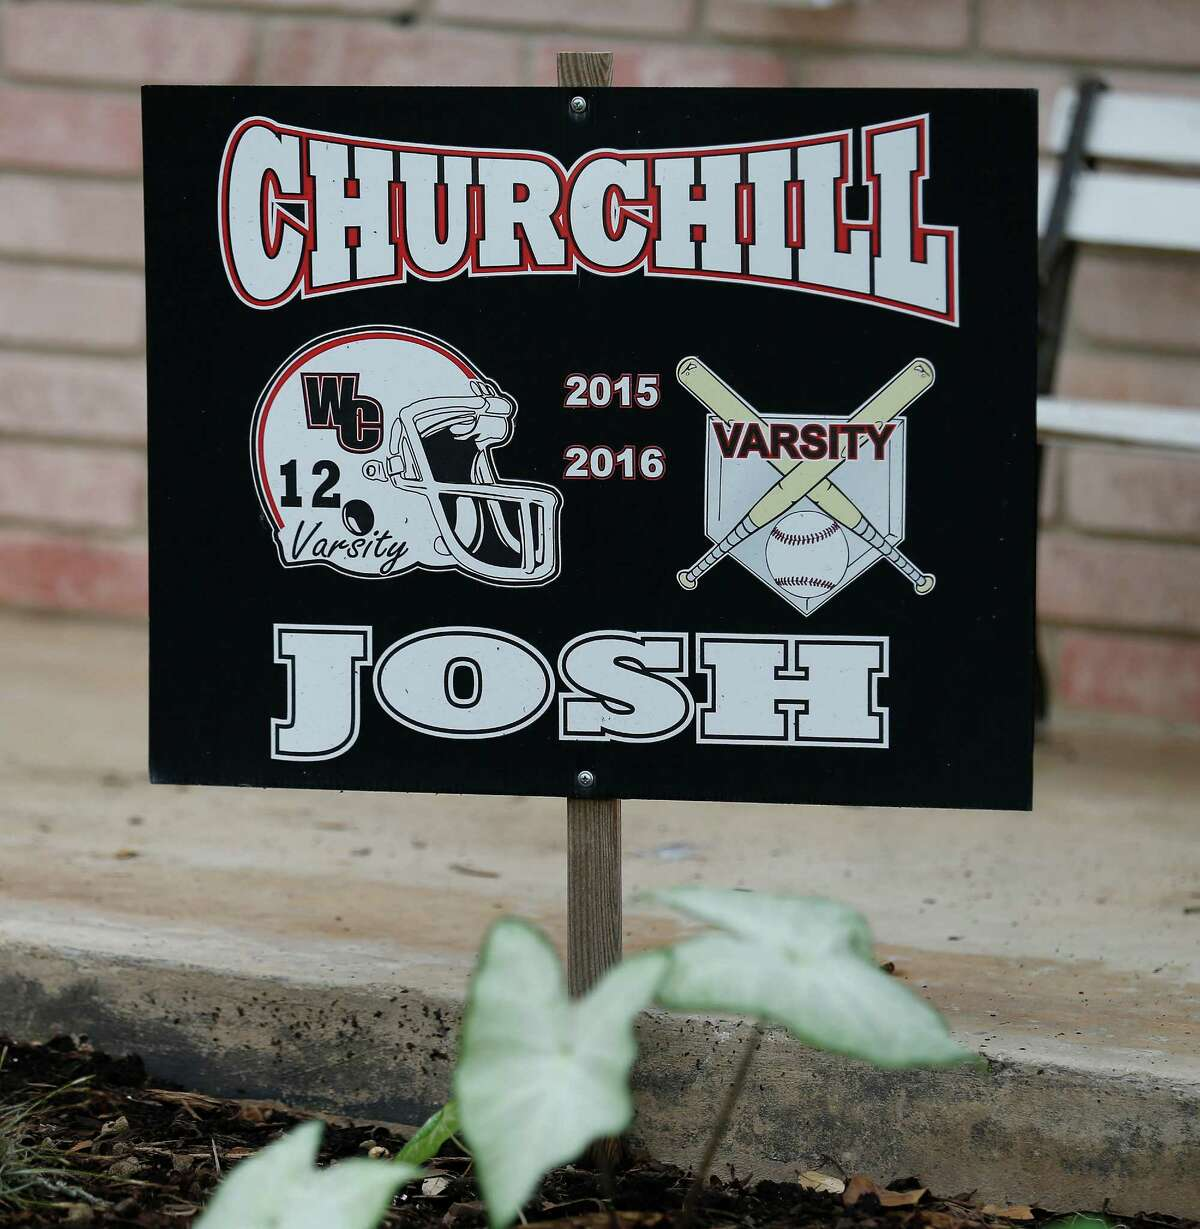 In August, Stacie Pollard and her husband Dan lost their youngest son, Joshua, when he passed away due to sudden cardiac arrest from a previously undiagnosed heart condition. In front of the family's home is a sign showing the sports that the 18-year-old participated in at Churchill High School. (Kin Man Hui/San Antonio Express-News)